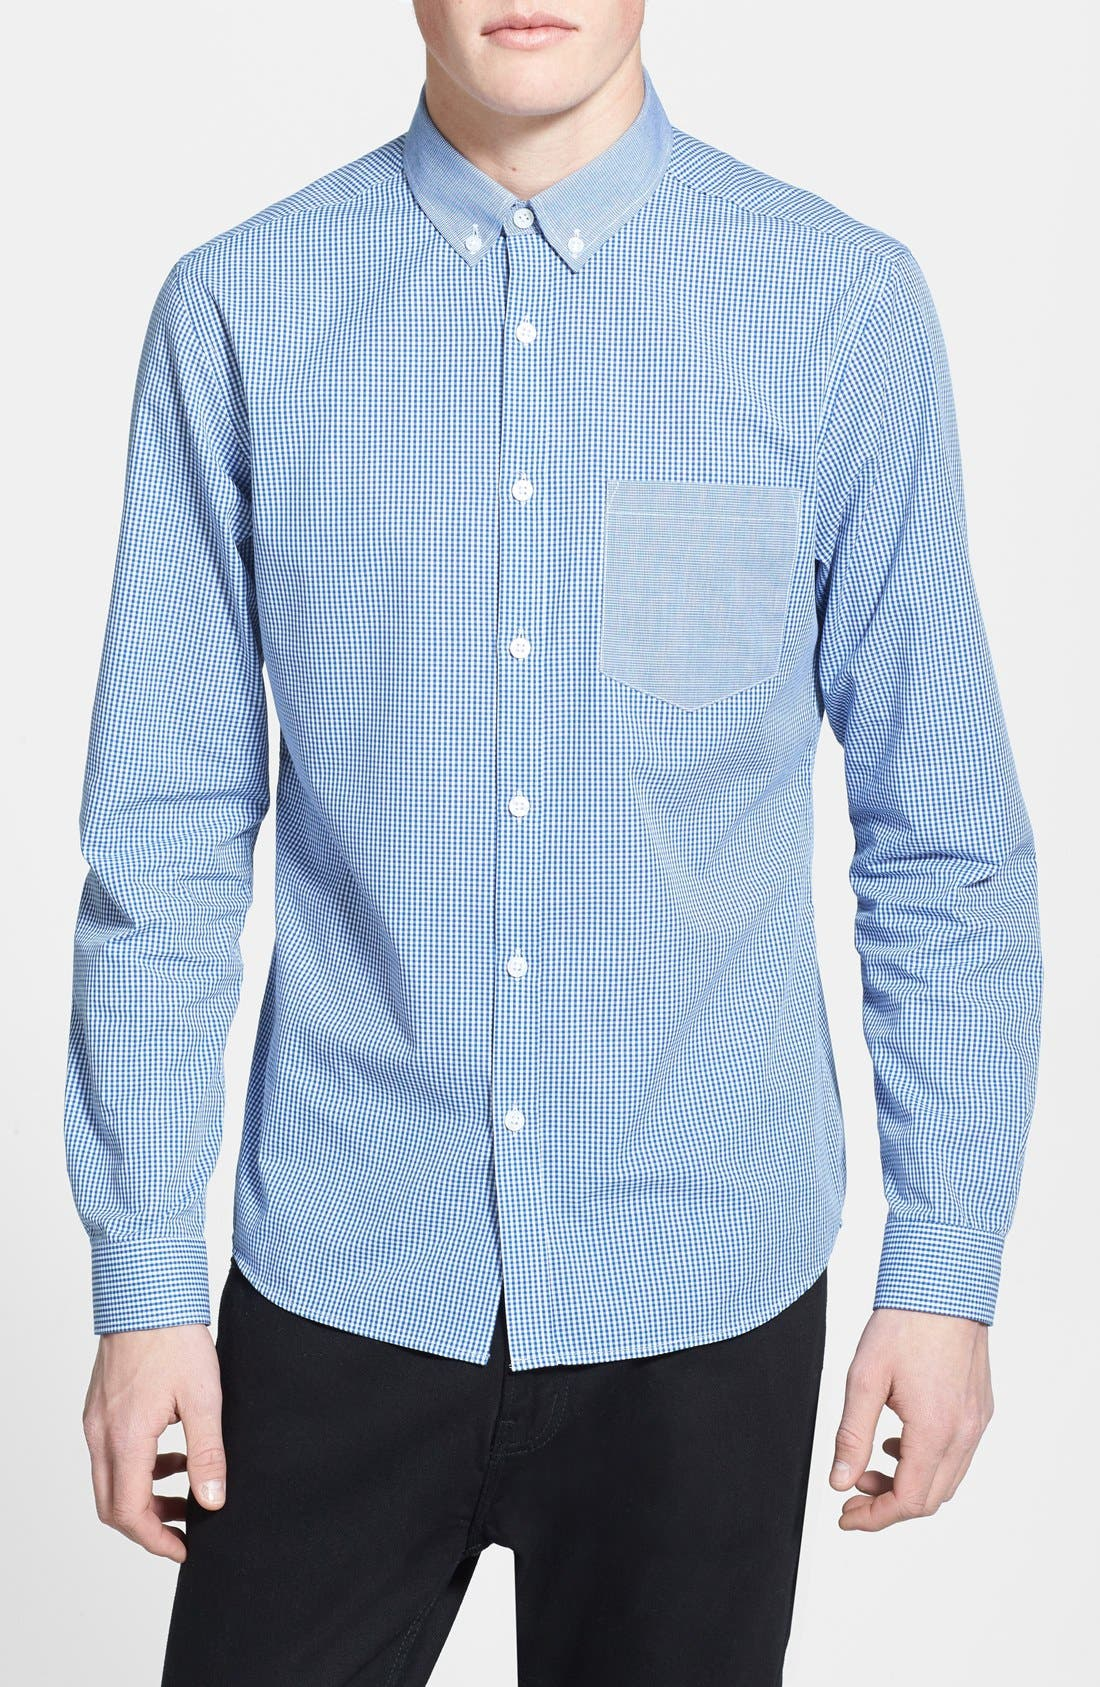 Alternate Image 1 Selected - Topman Slim Fit Chambray Trimmed Gingham Shirt